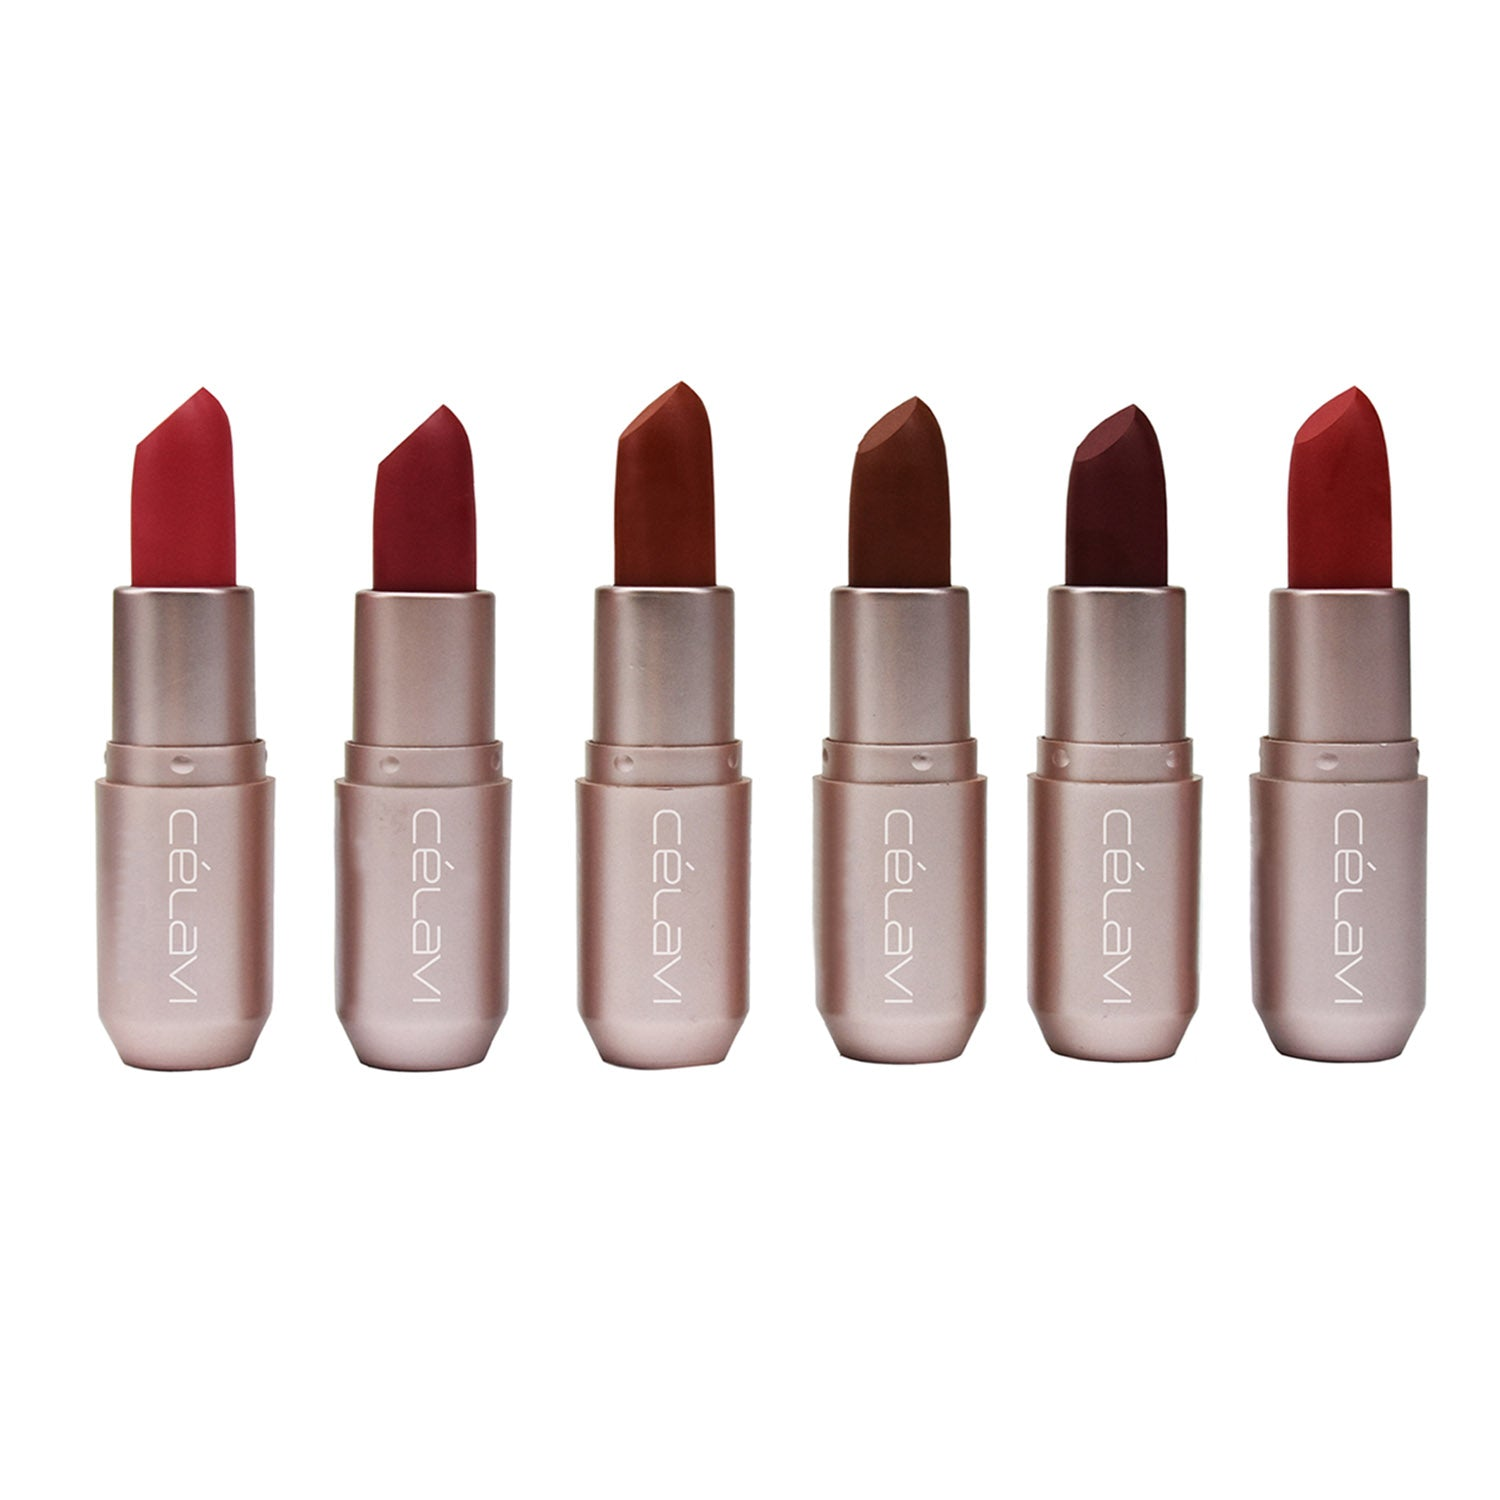 Velvet Shine Free Flat Finish Matte Lipstick 6 Colors